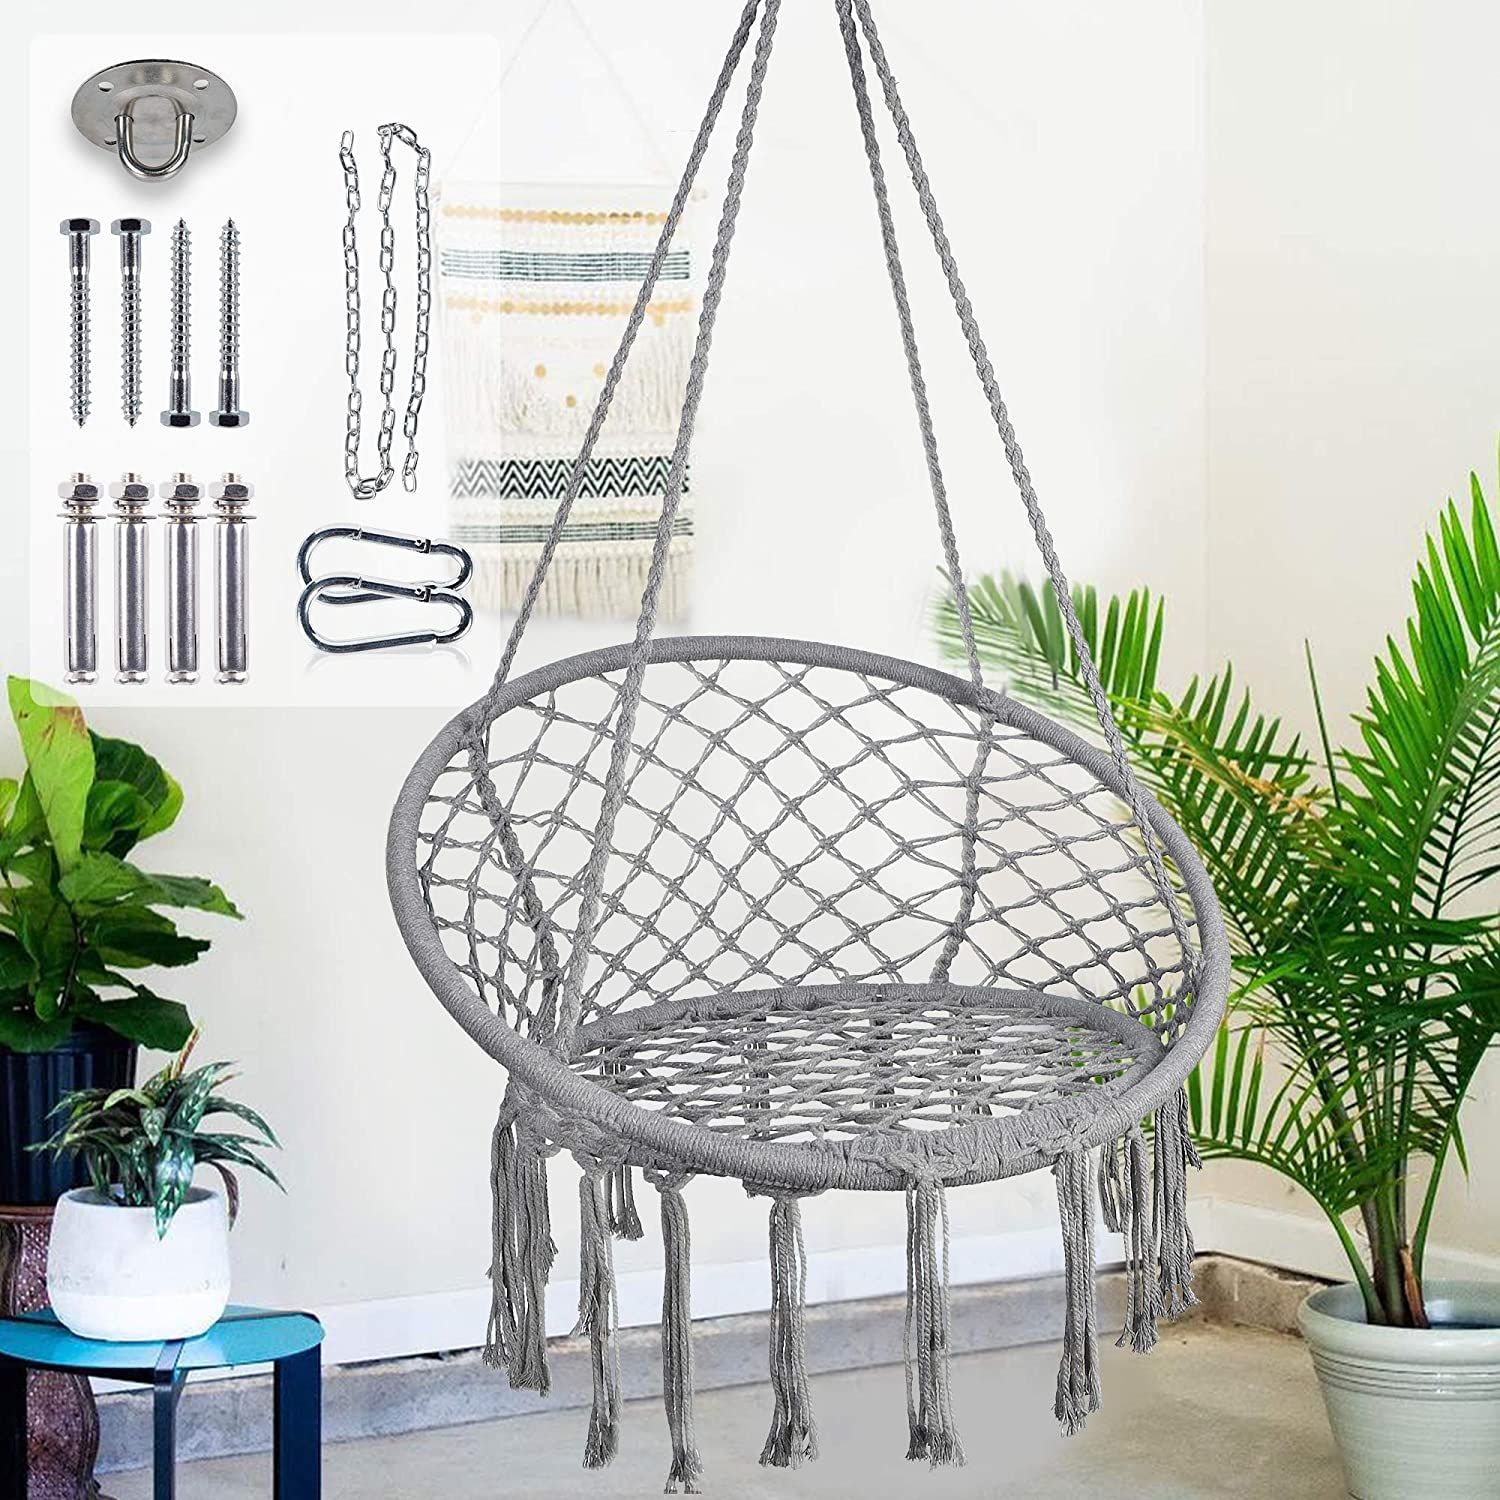 Blissun Hammock Chair Macrame Swing Chair, Hanging Cotton Rope Hammock Chair Swing for Bedrooms, Patio, Porch, Deck, Yard, Garden, Grey